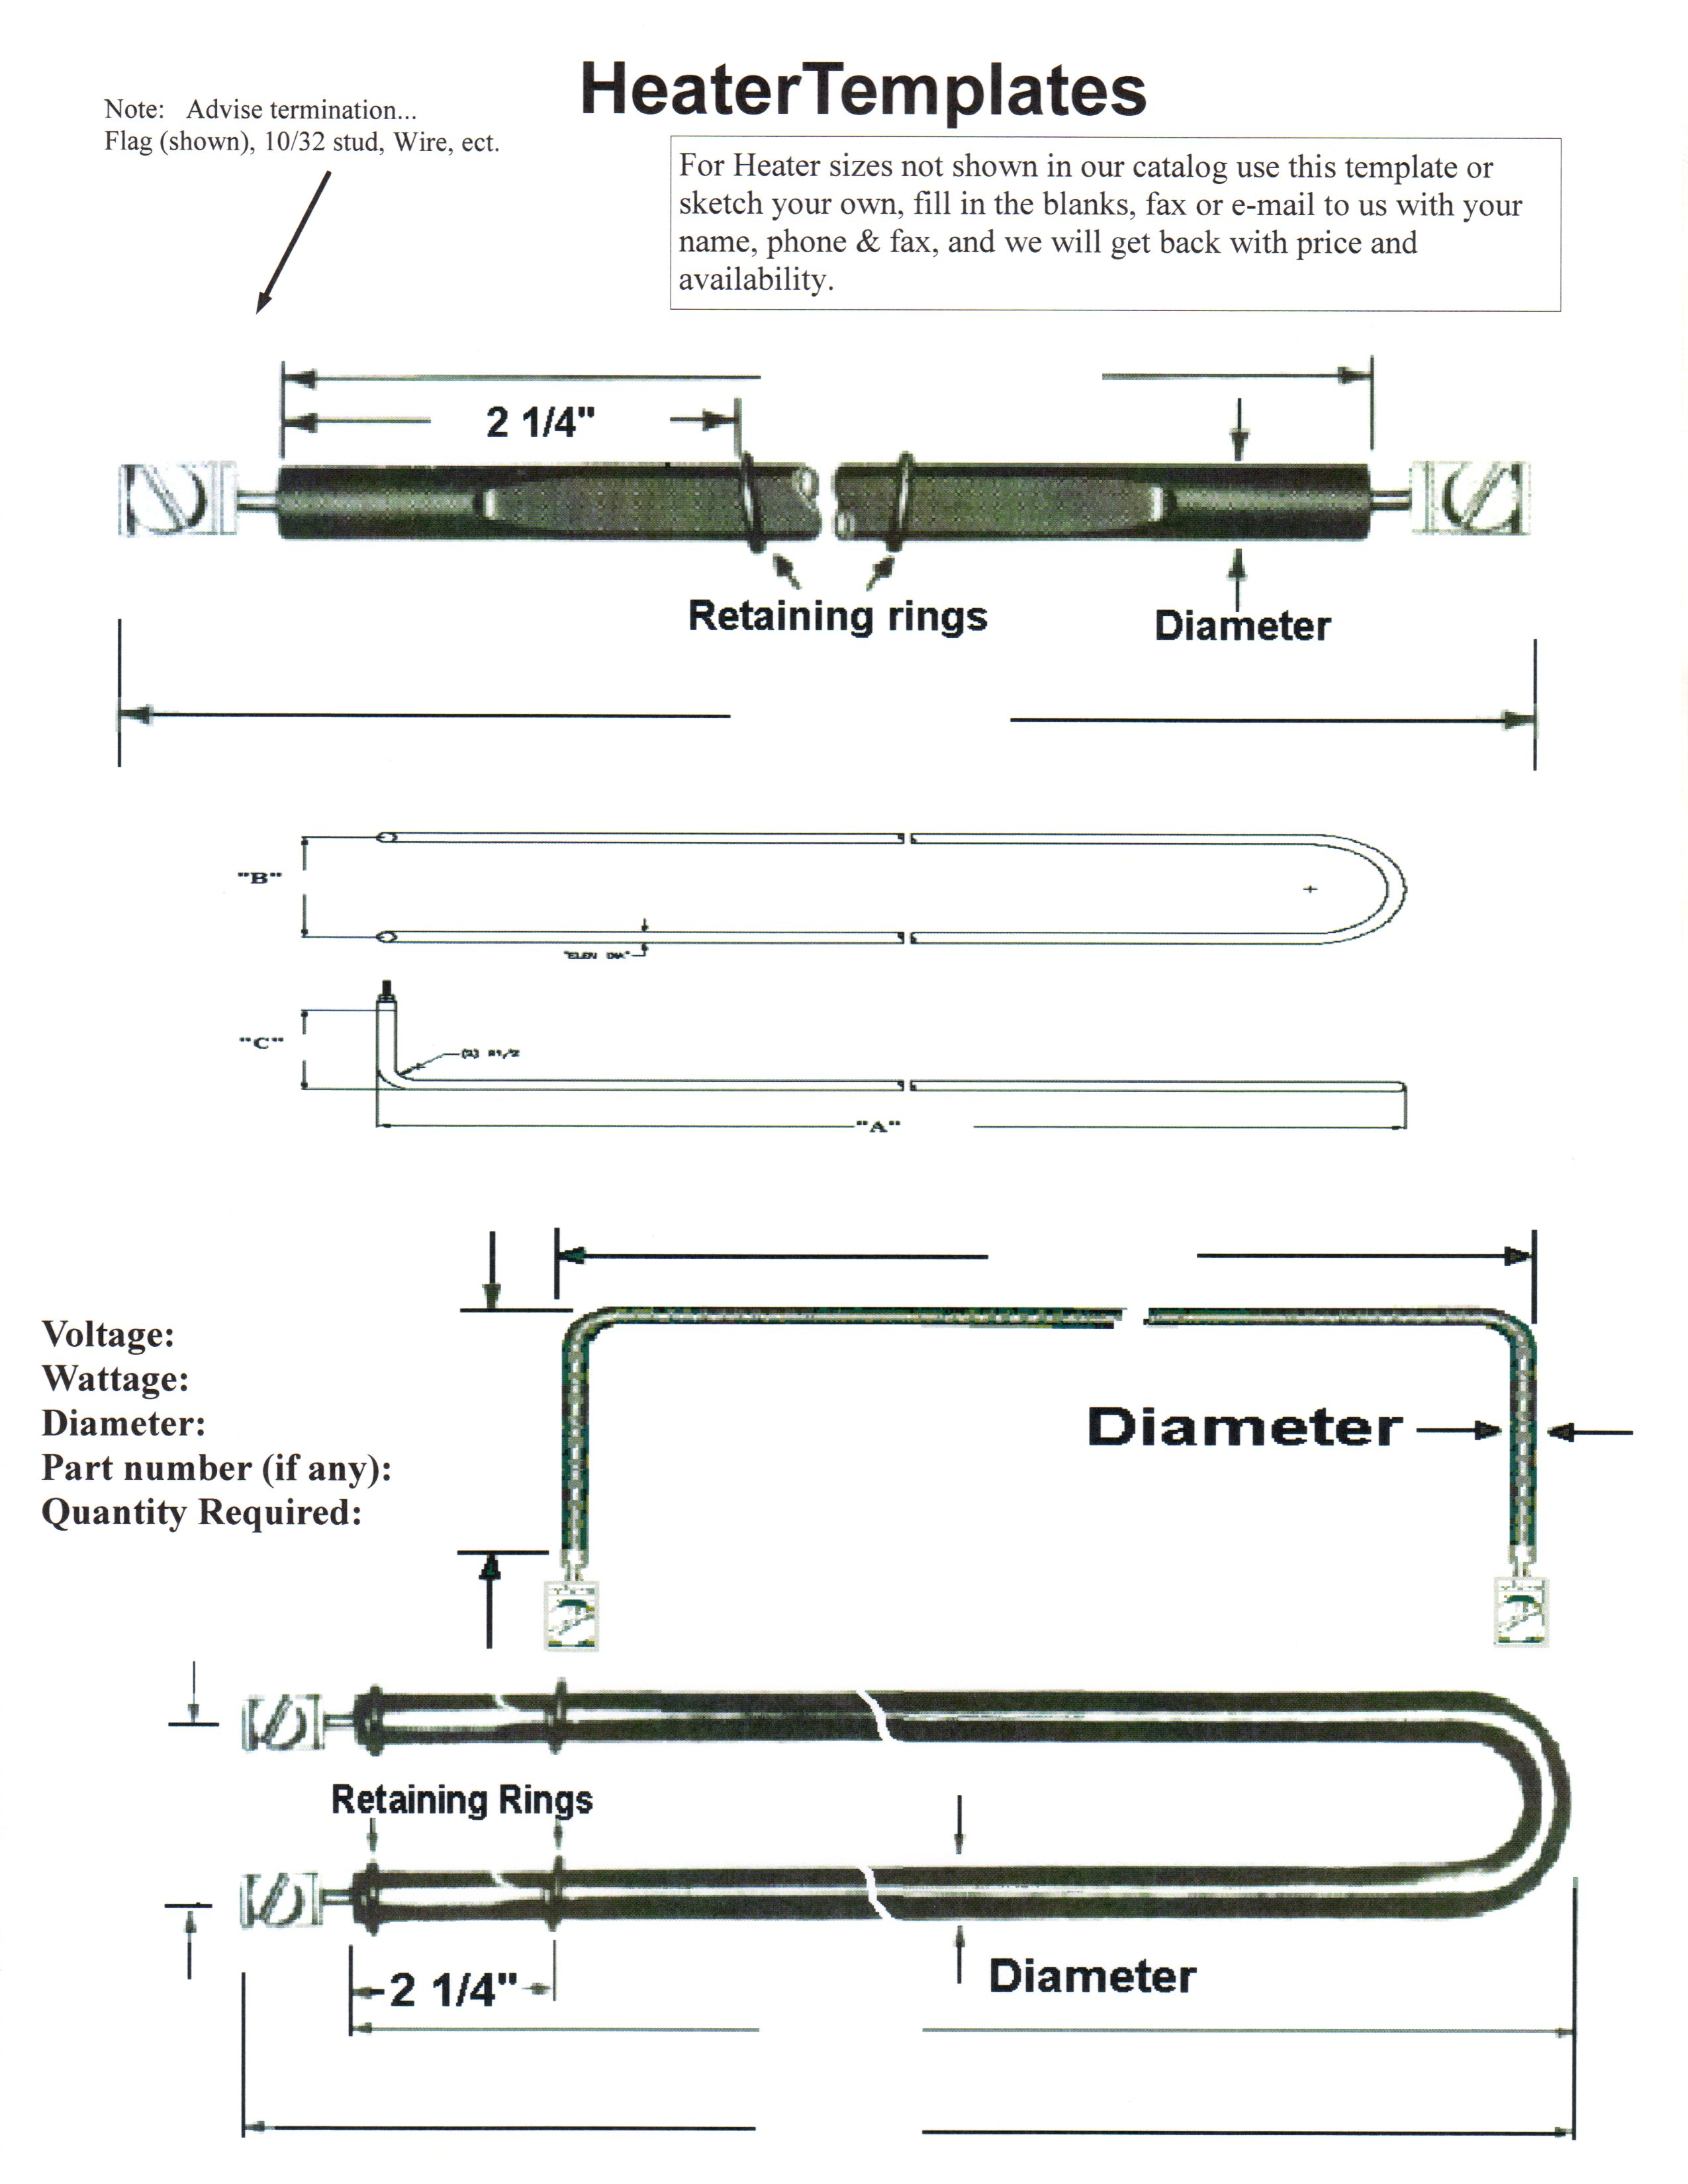 Some Heater Templates